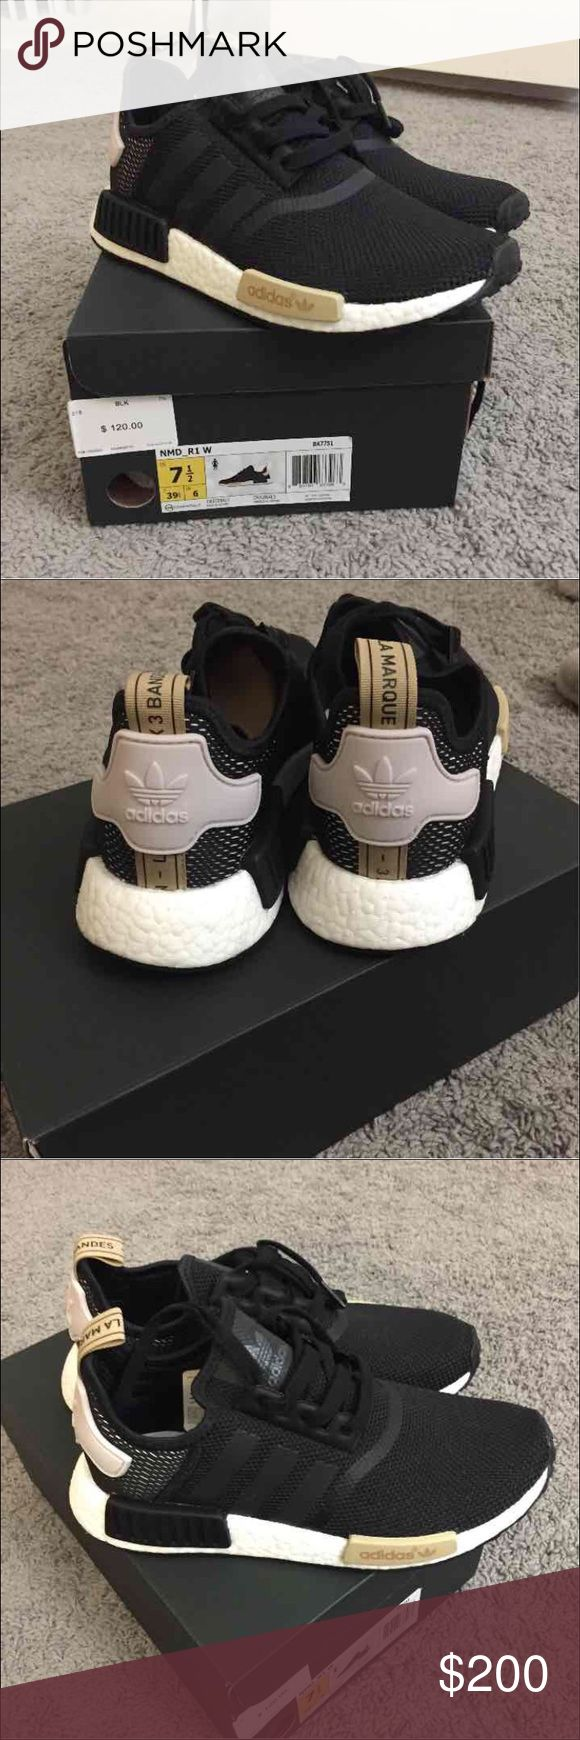 50 best adidas nmd images on pinterest adidas nmd shoes and